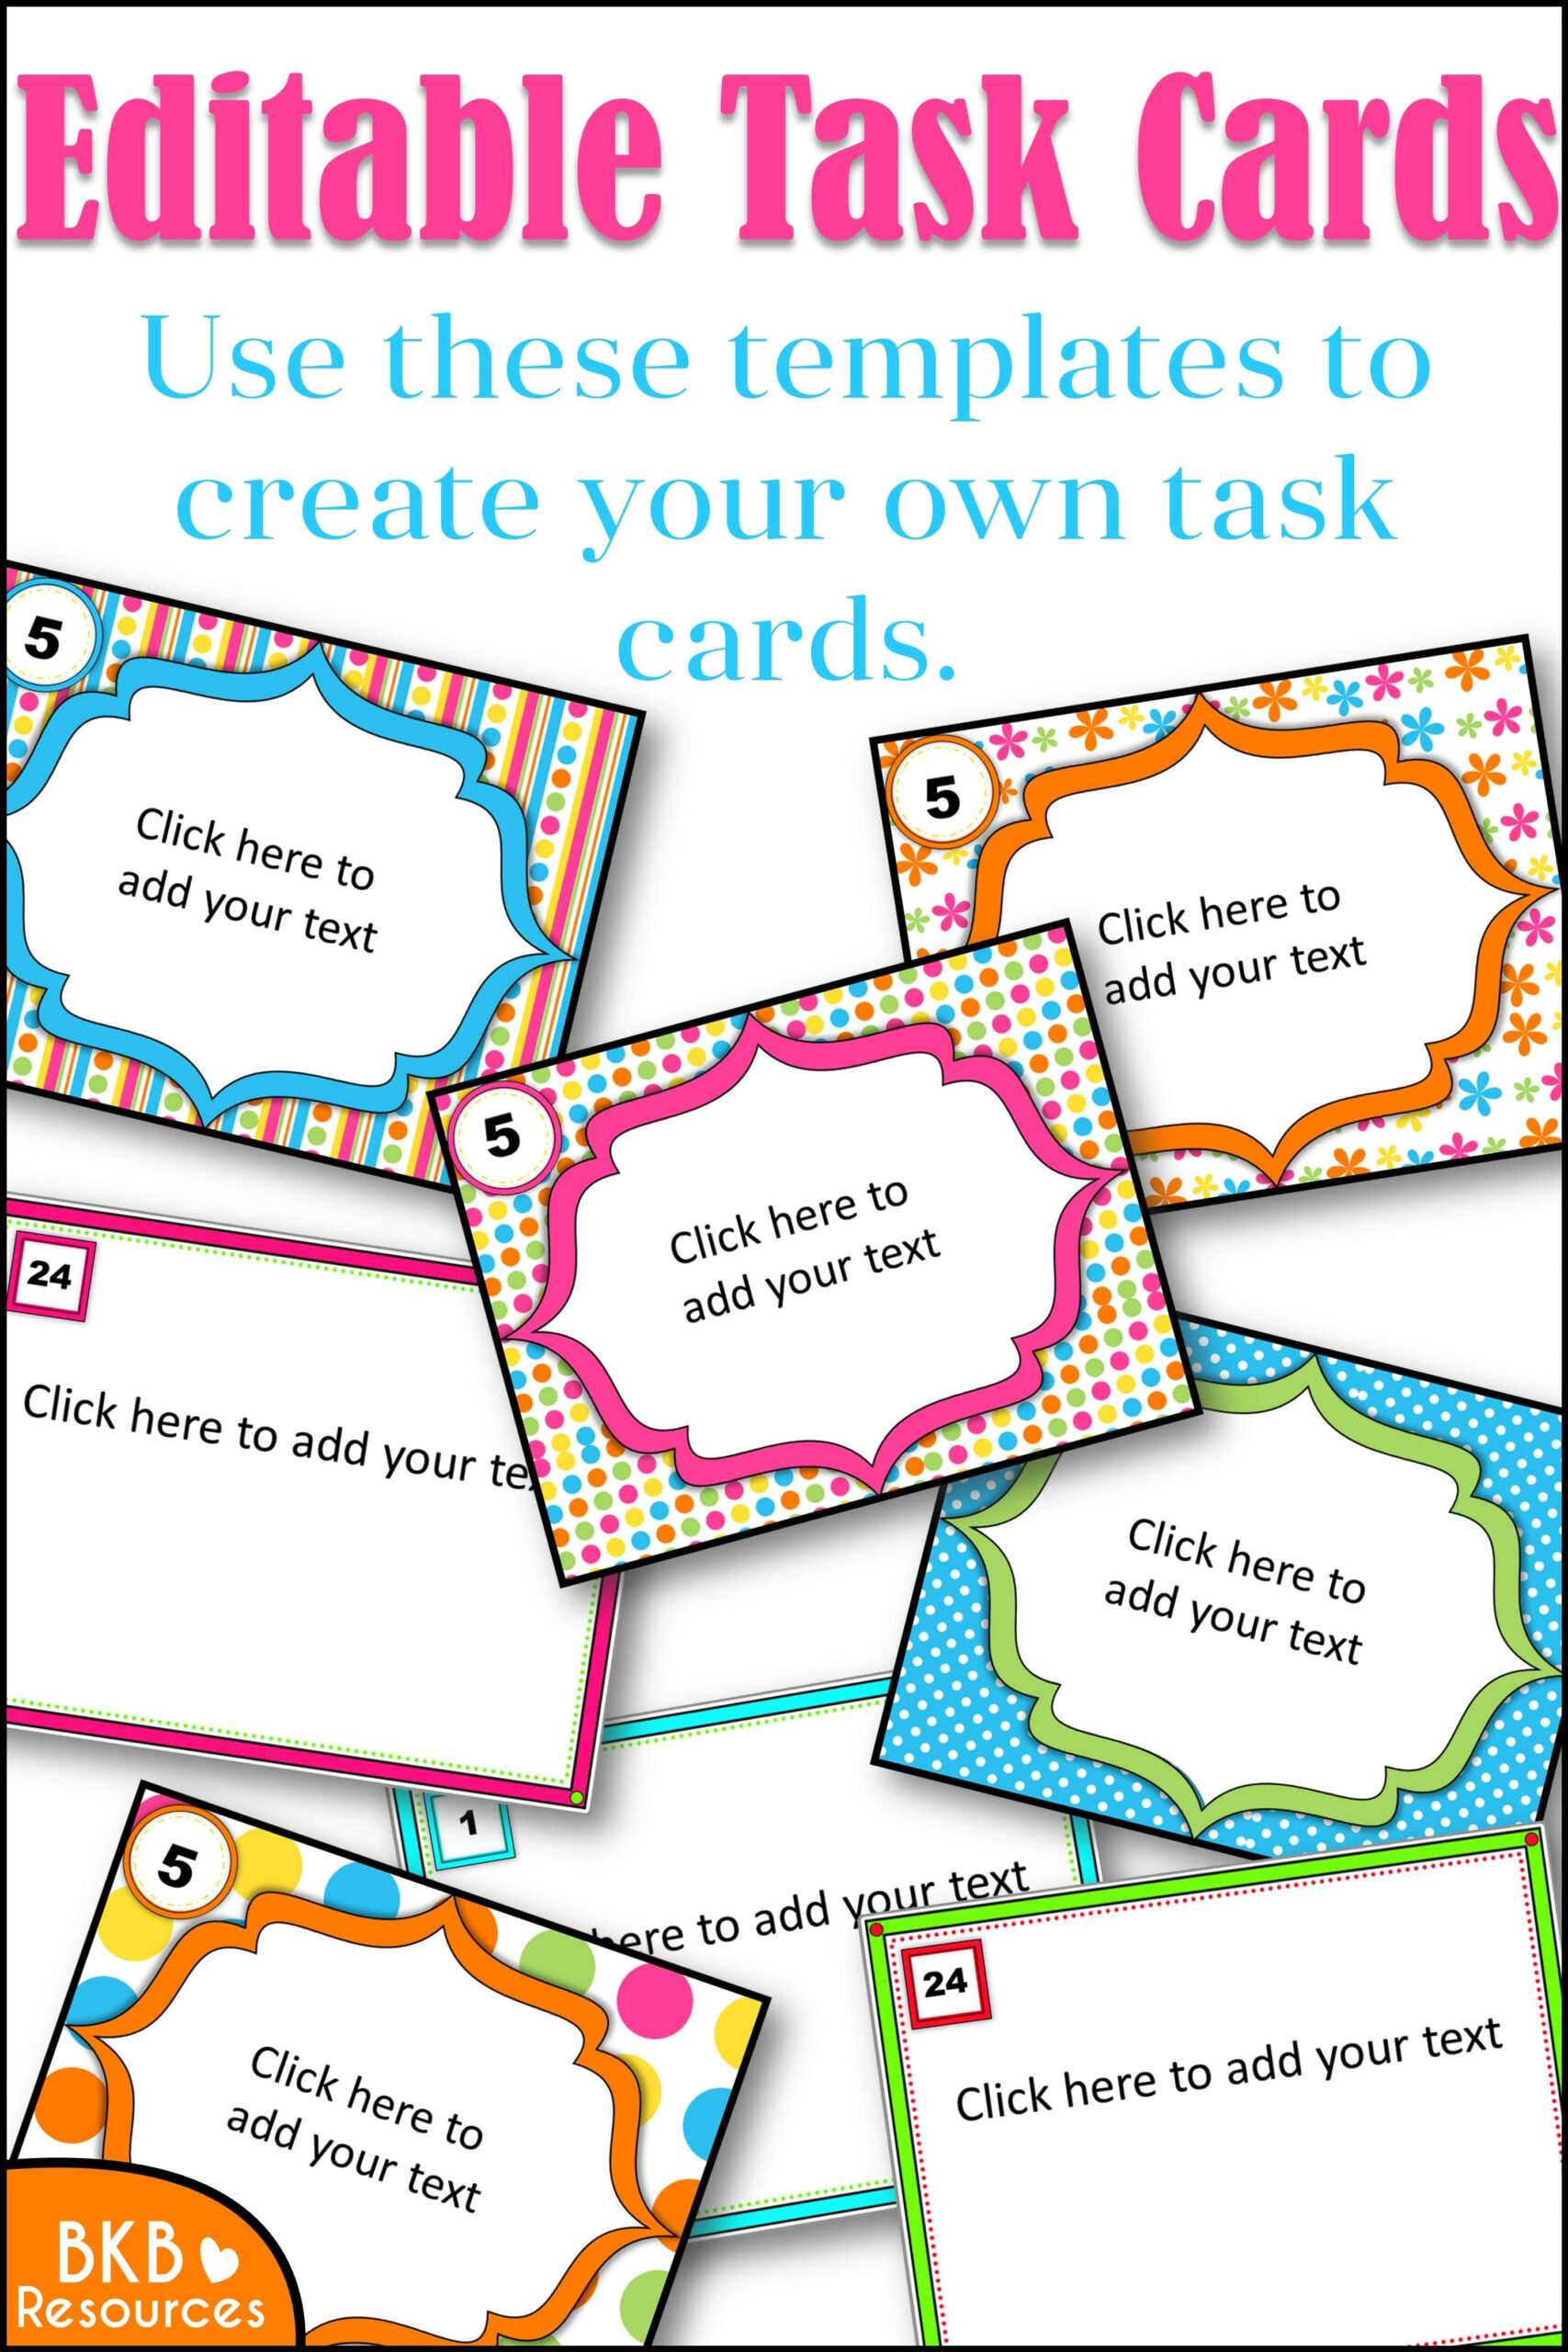 Editable Task Card Templates - Bkb Resources Intended For Task Cards Template